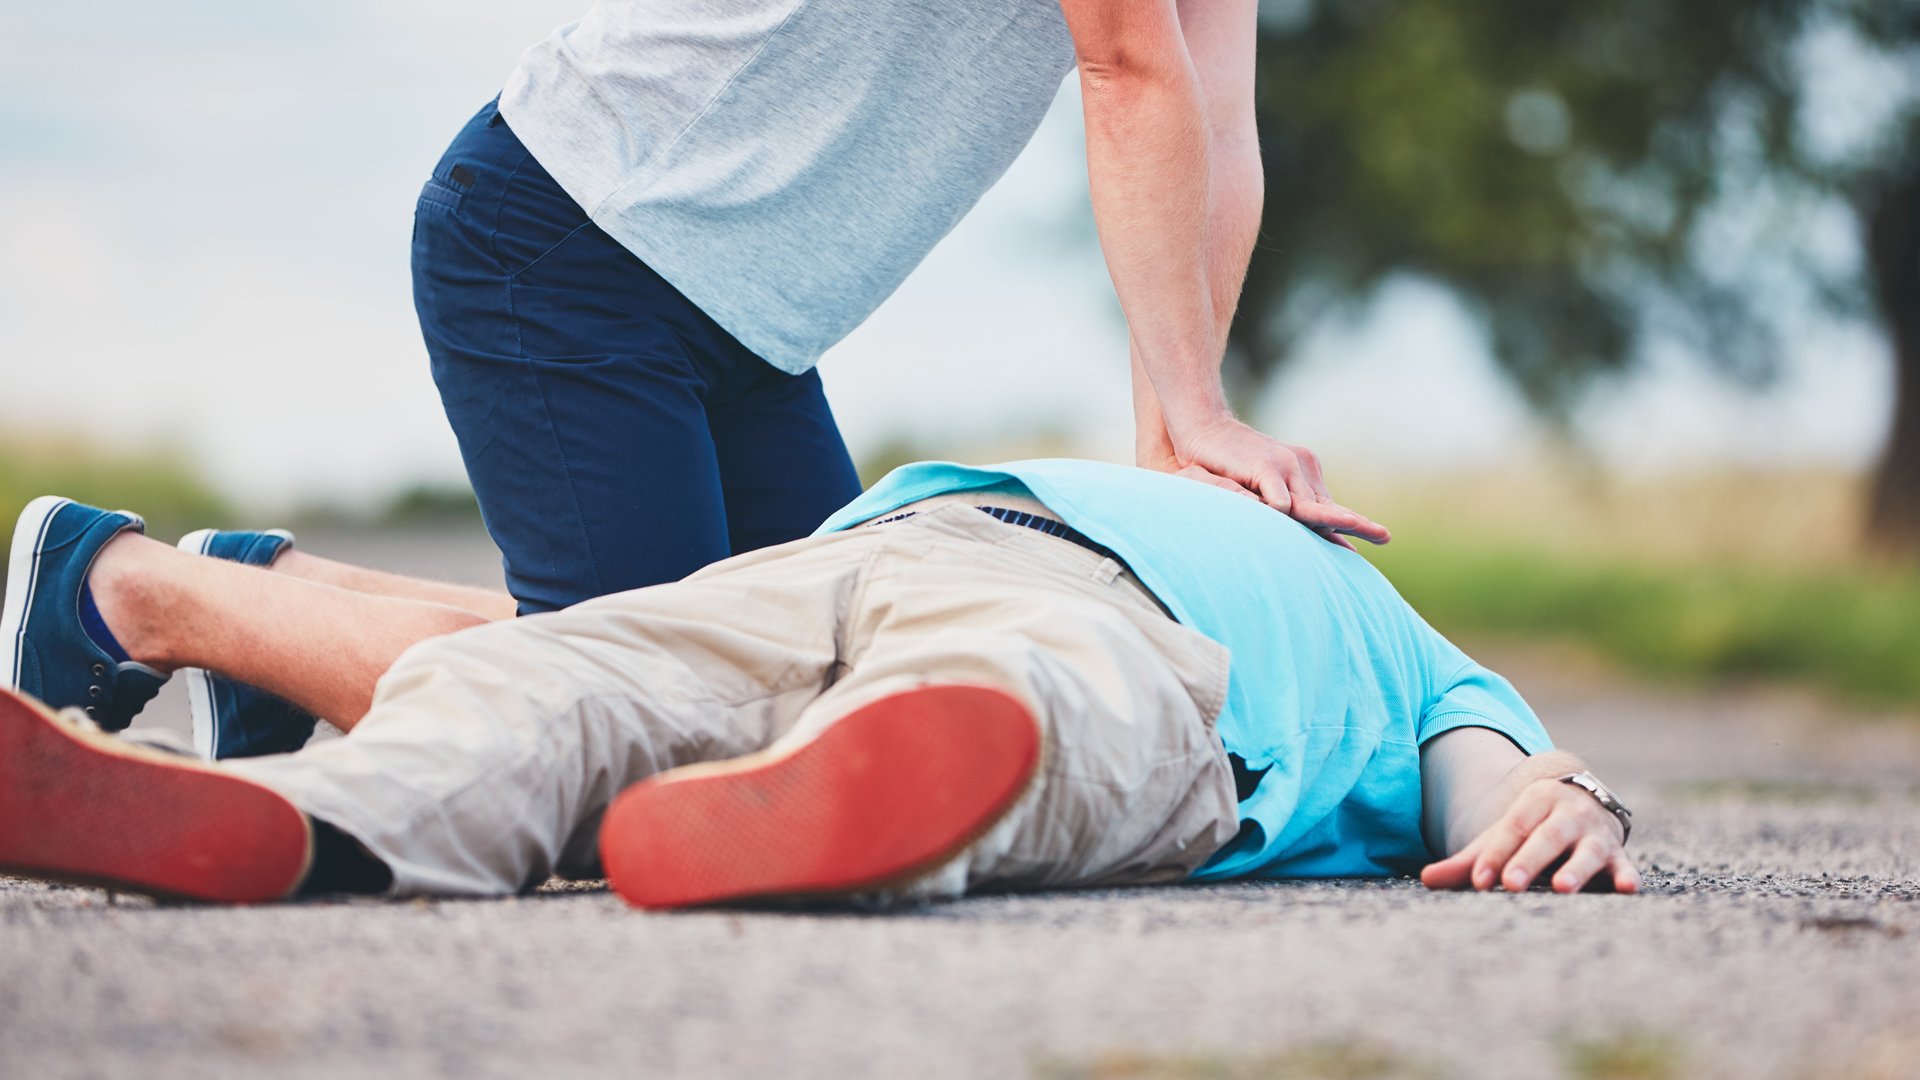 20 Volunteers Save Life By Doing CPR for 96 Minutes 1920x1080